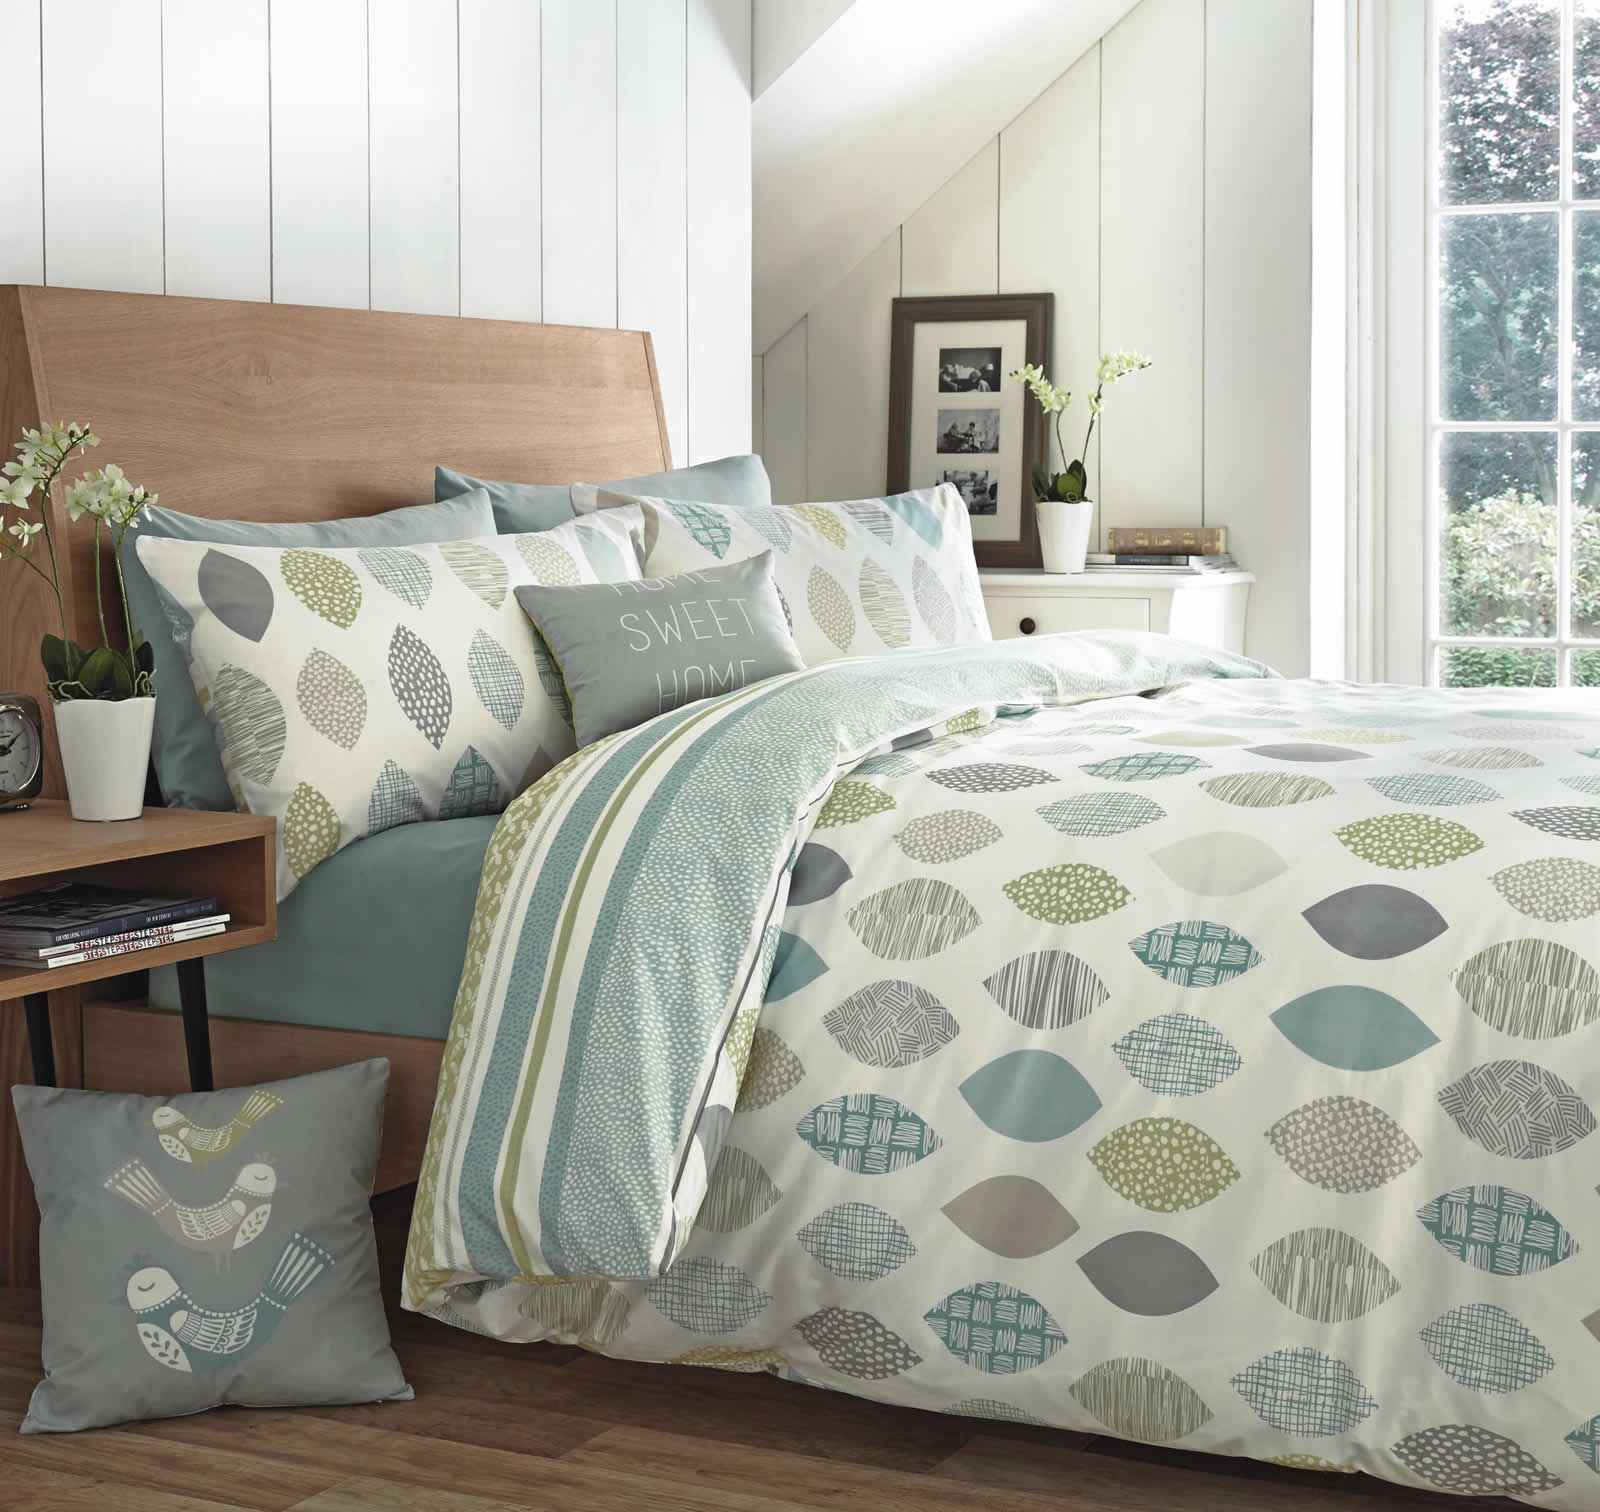 Letree leaf reversible duvet covers quilt set 100 cotton